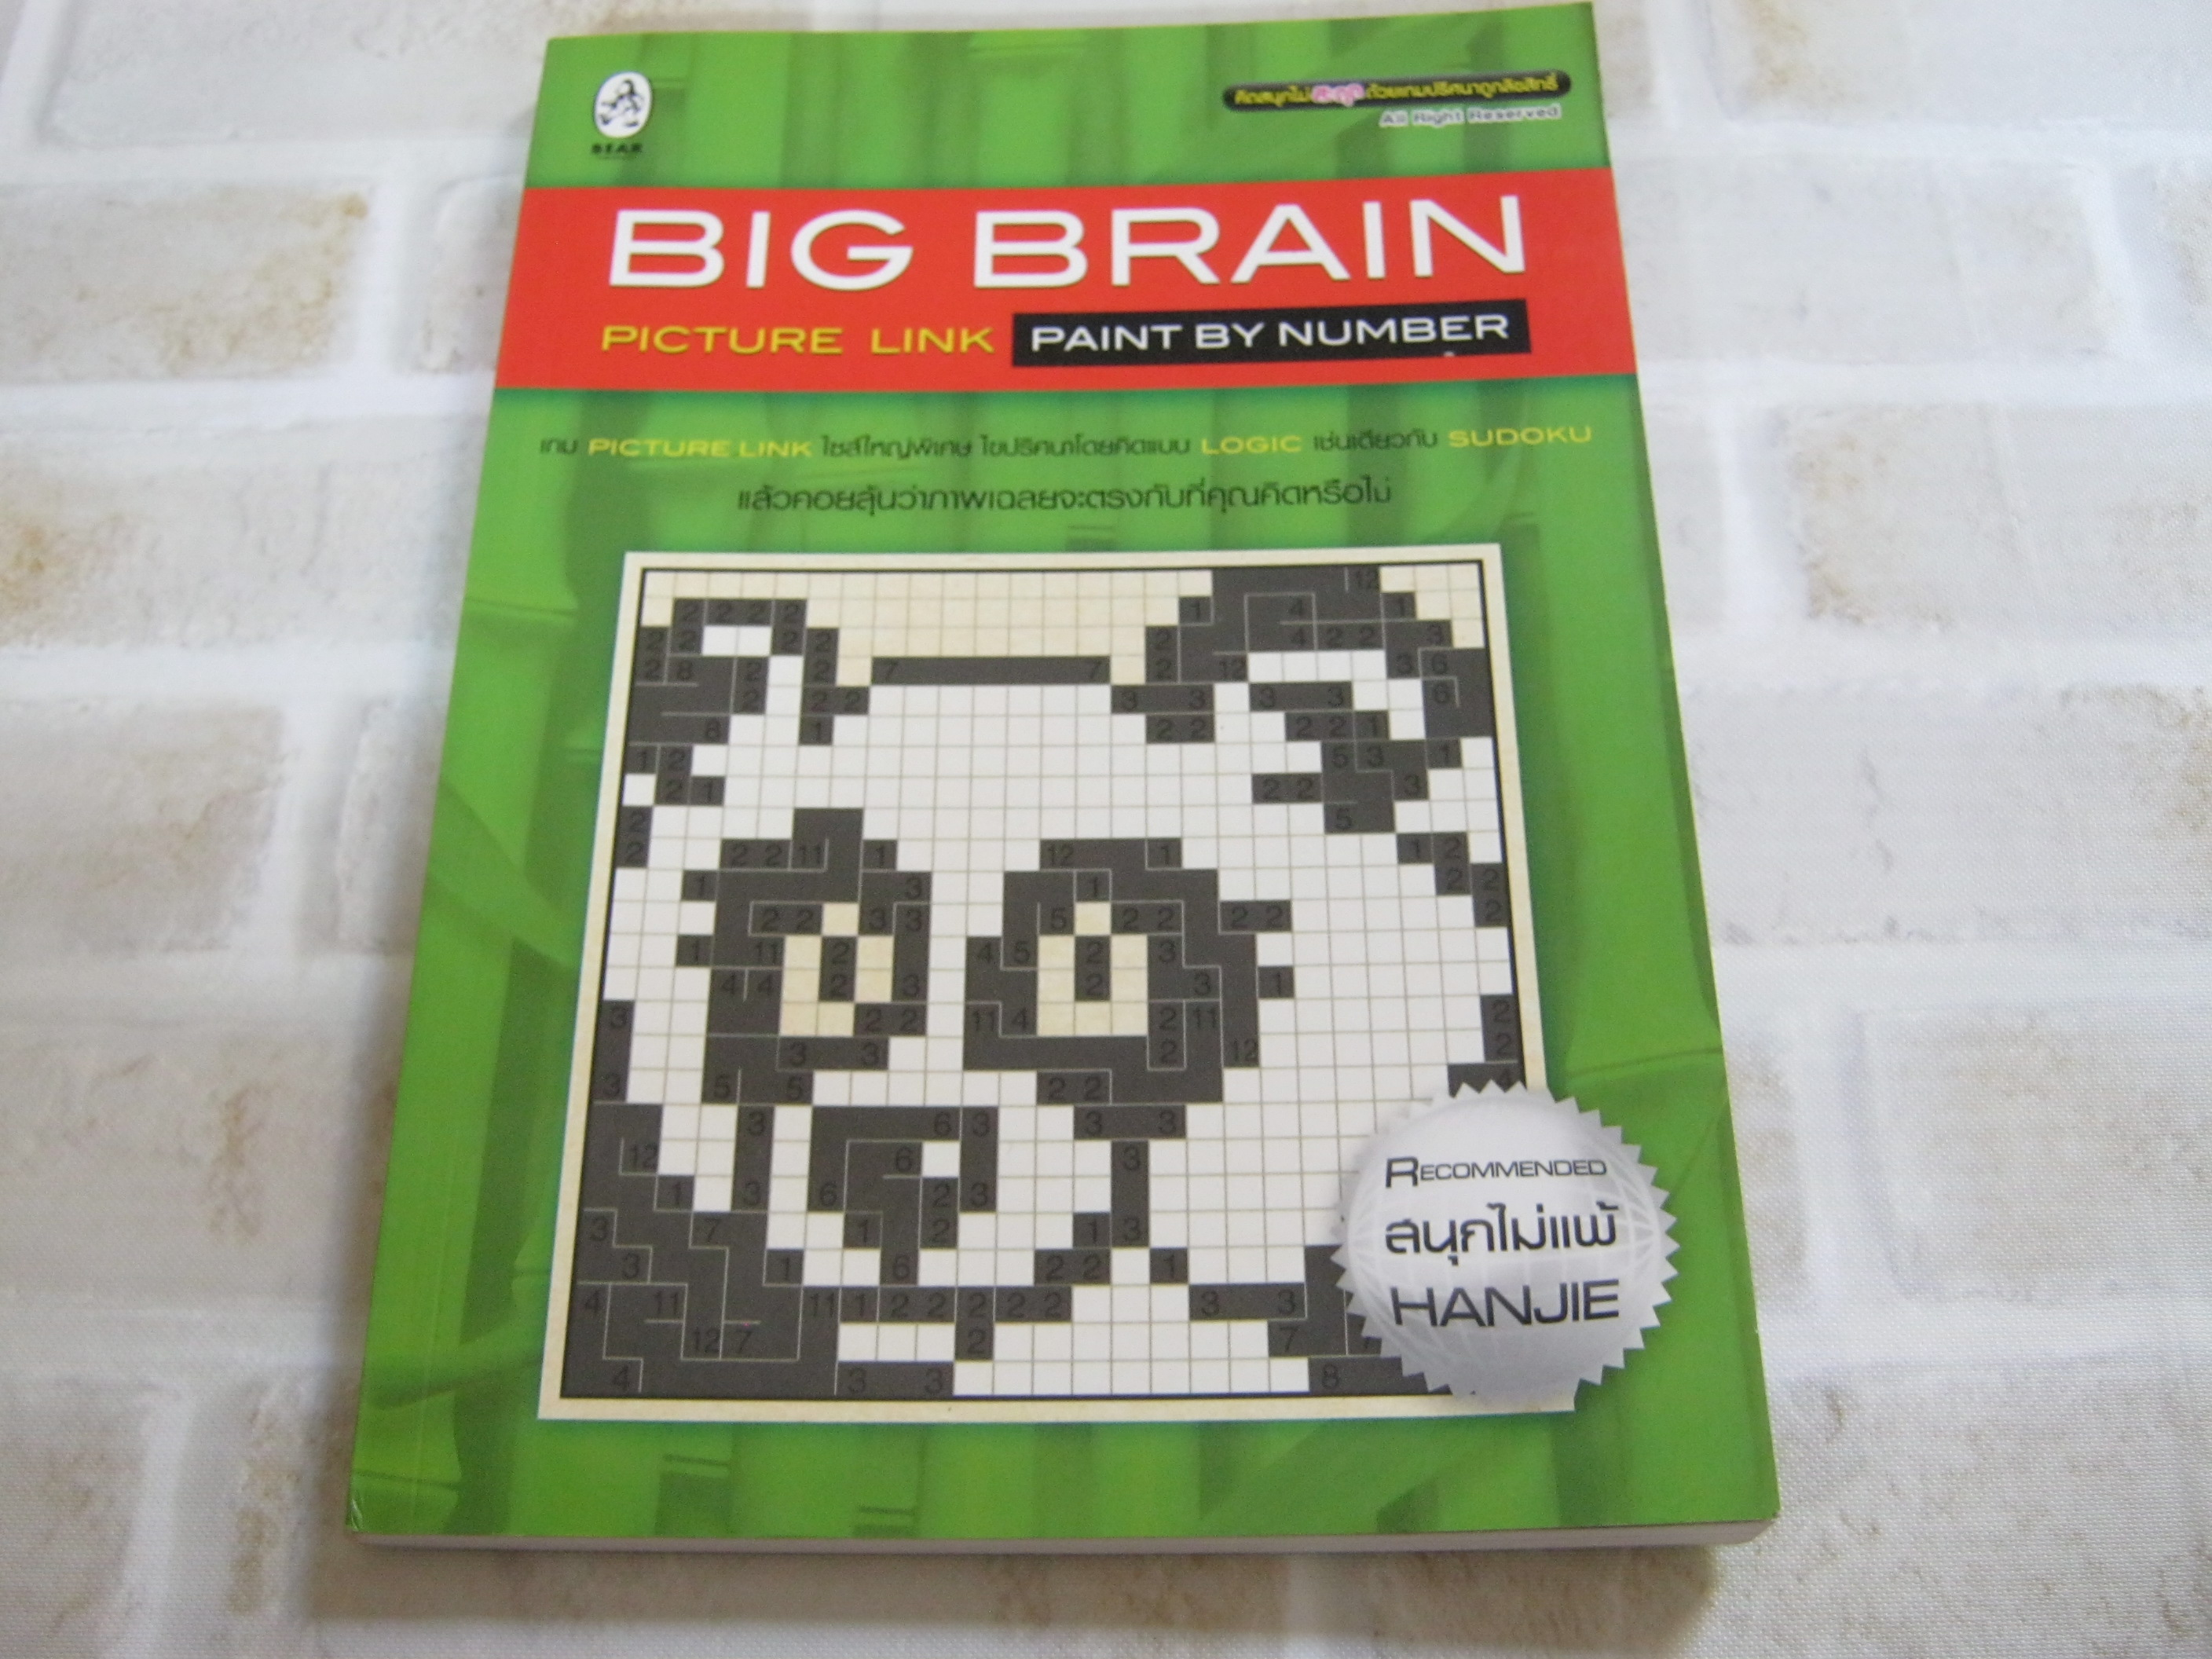 BIG BRAIN PICTURE LINK PAINT BY NUMBER